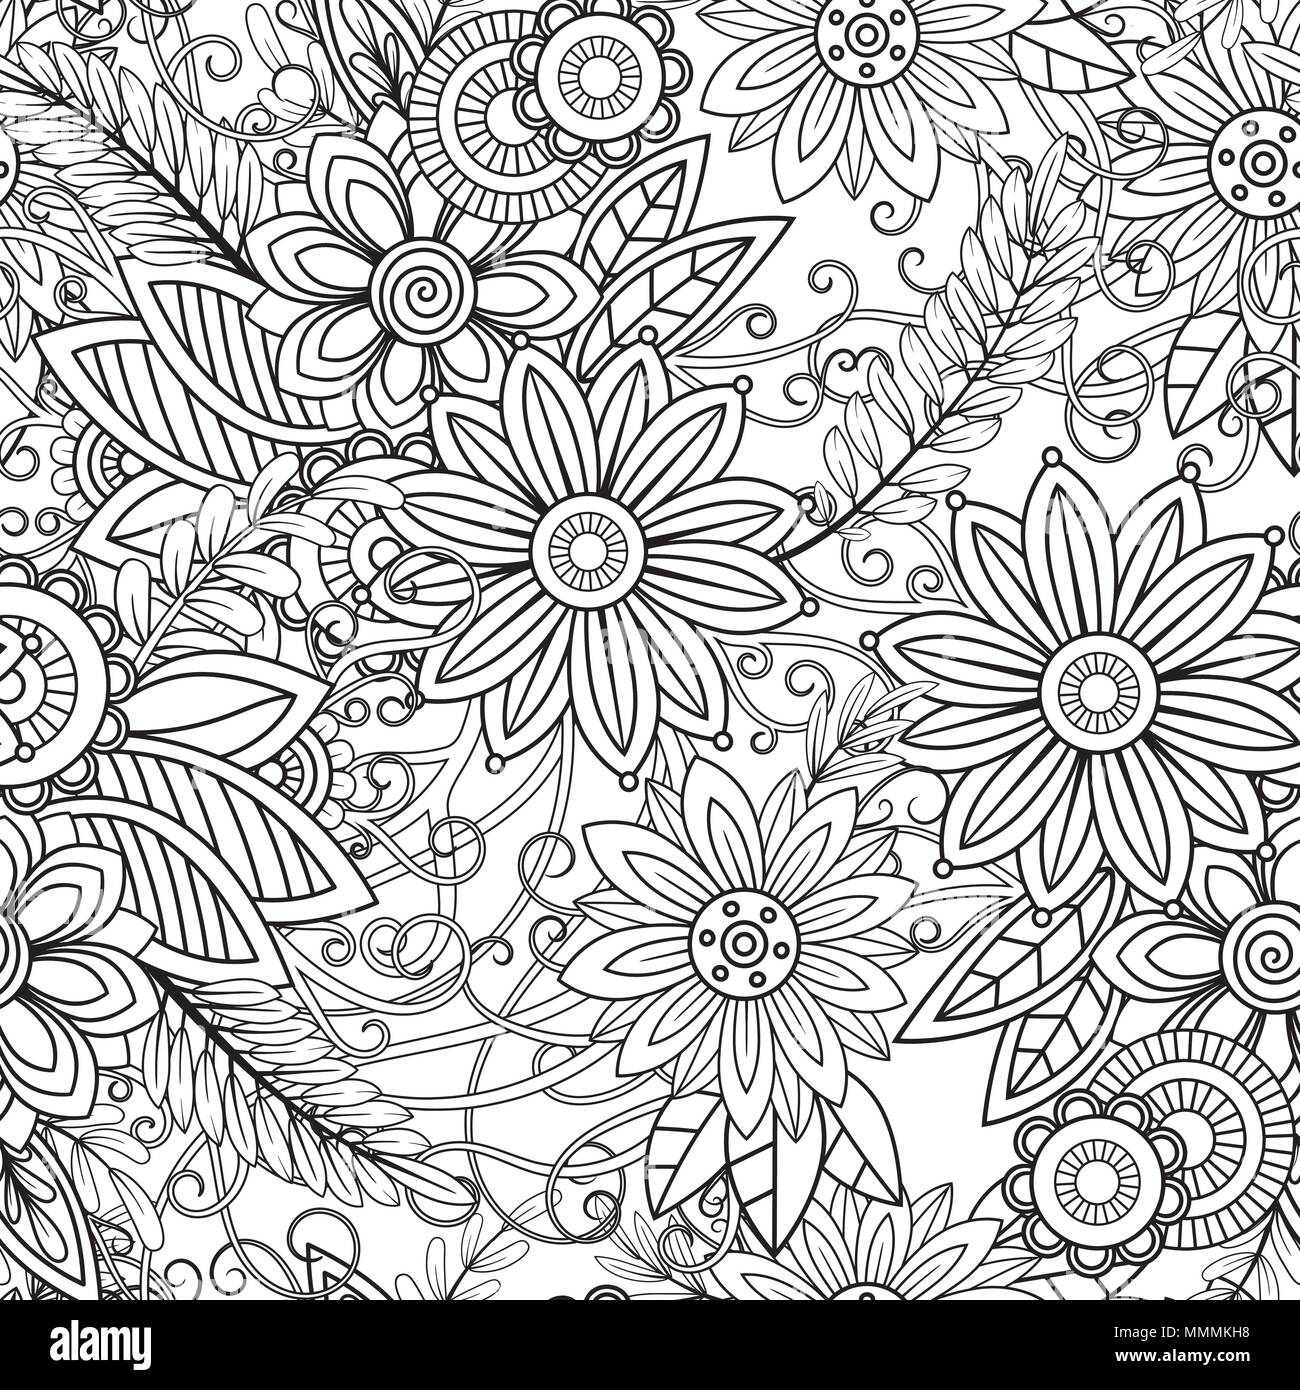 Doodles Floral Ornament Black And White Decorative Elements Perfect For Wallpaper Adult Coloring Books Web Page Background Surface Textures